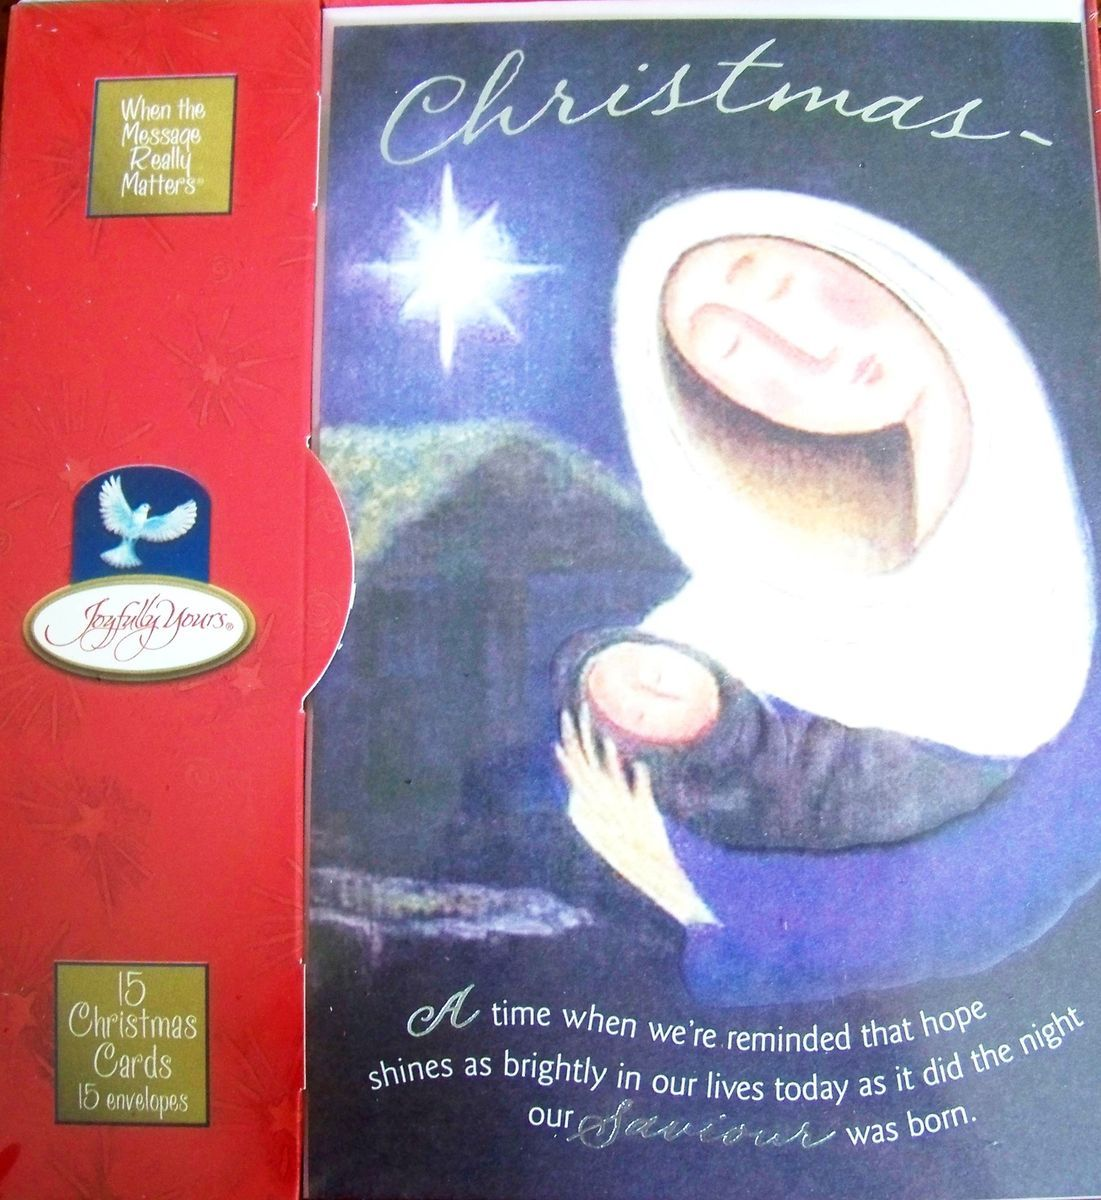 Inspirational Christian Christmas Greeting Cards Boxed Set 15 Cards